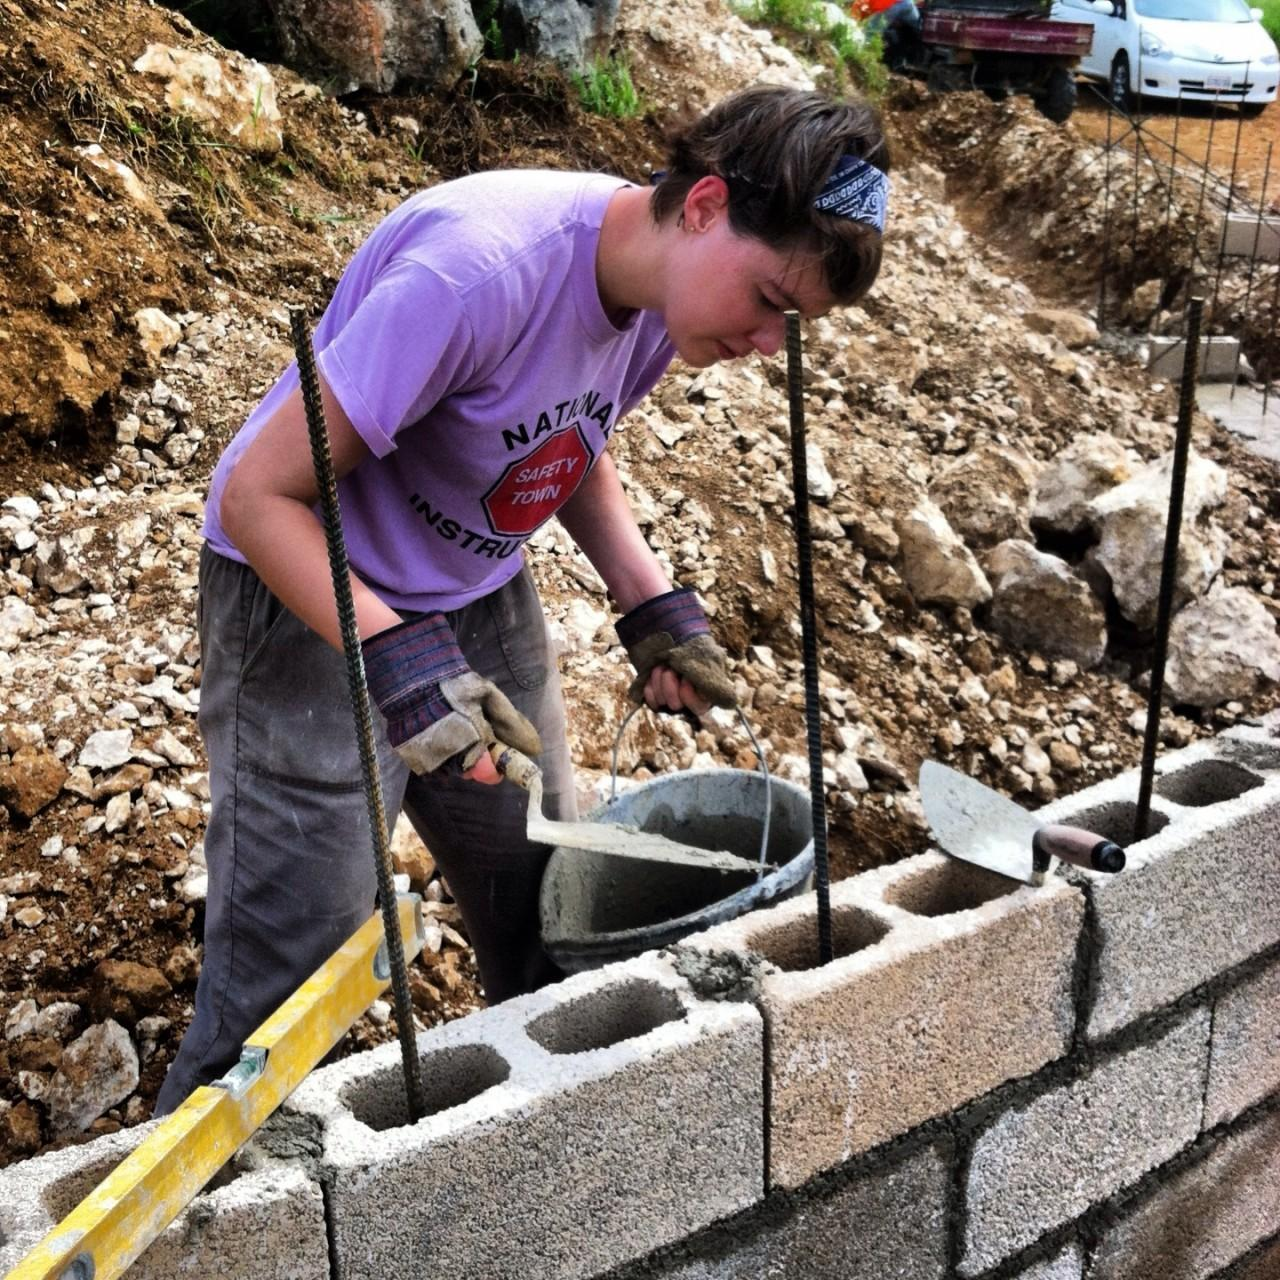 Sarah working on the wall.